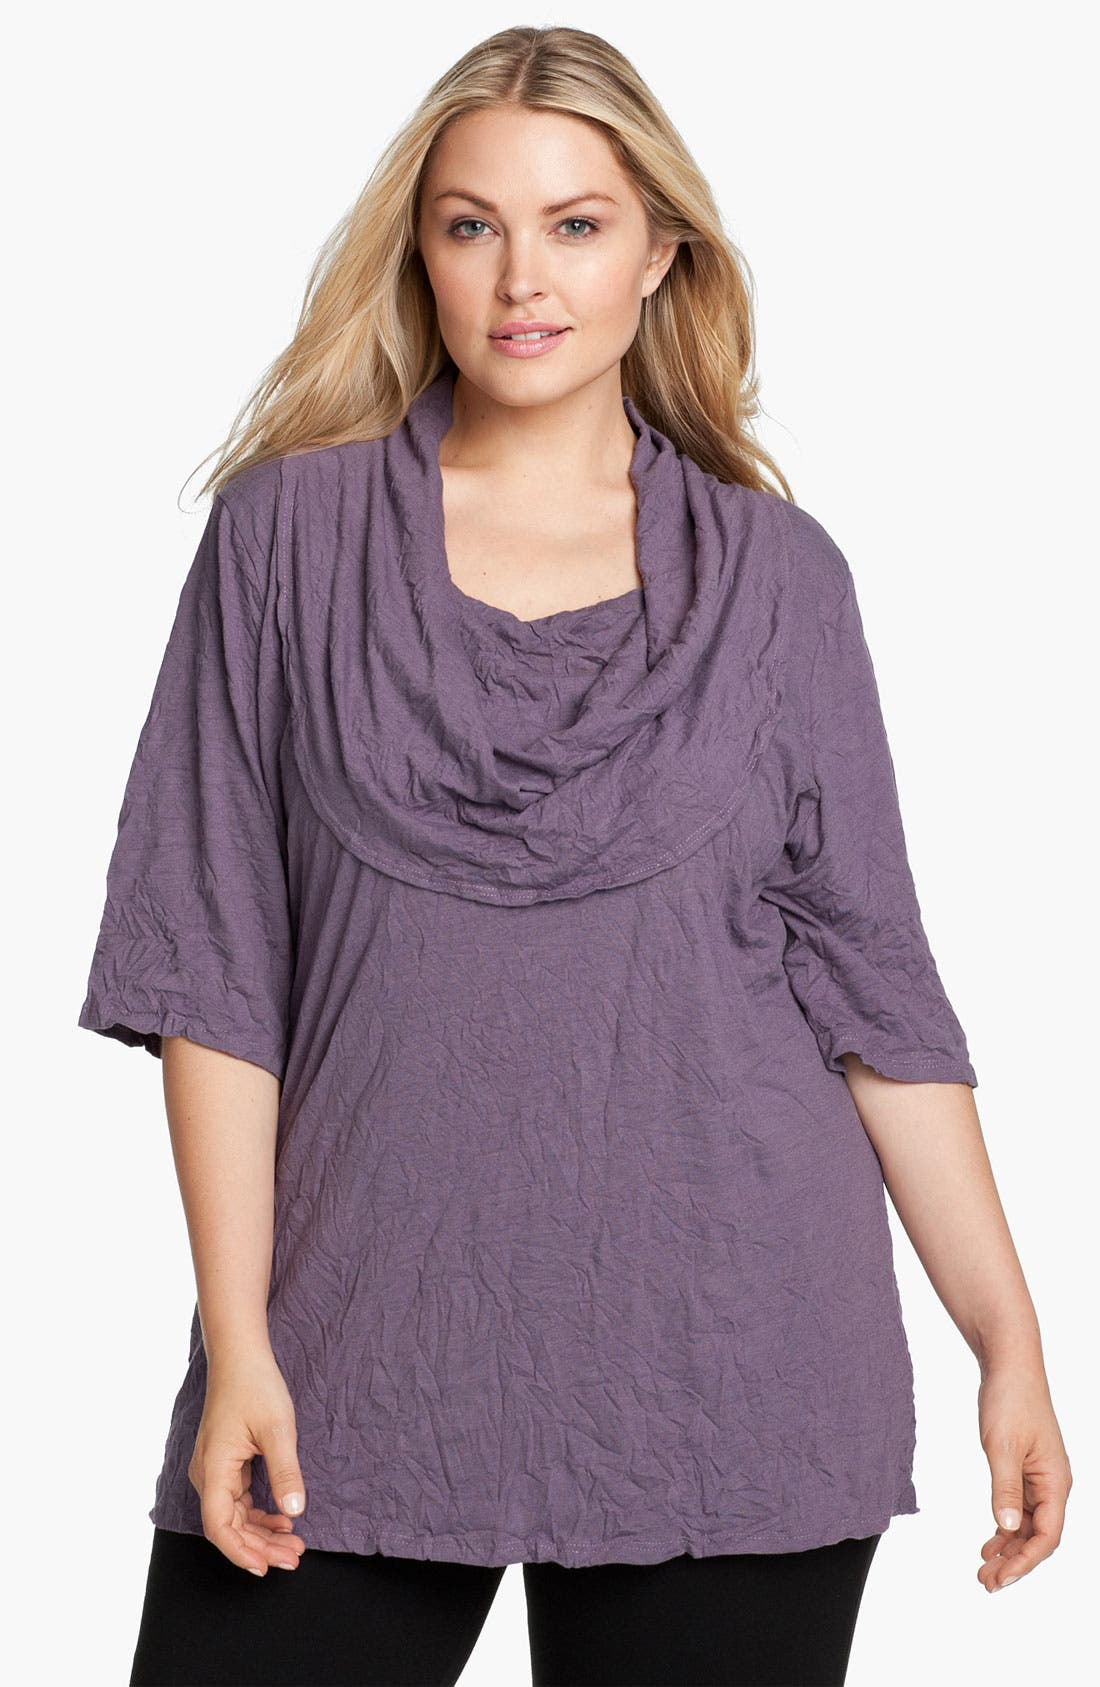 Alternate Image 1 Selected - Chalet 'Ariana' Cowl Neck Top (Plus)